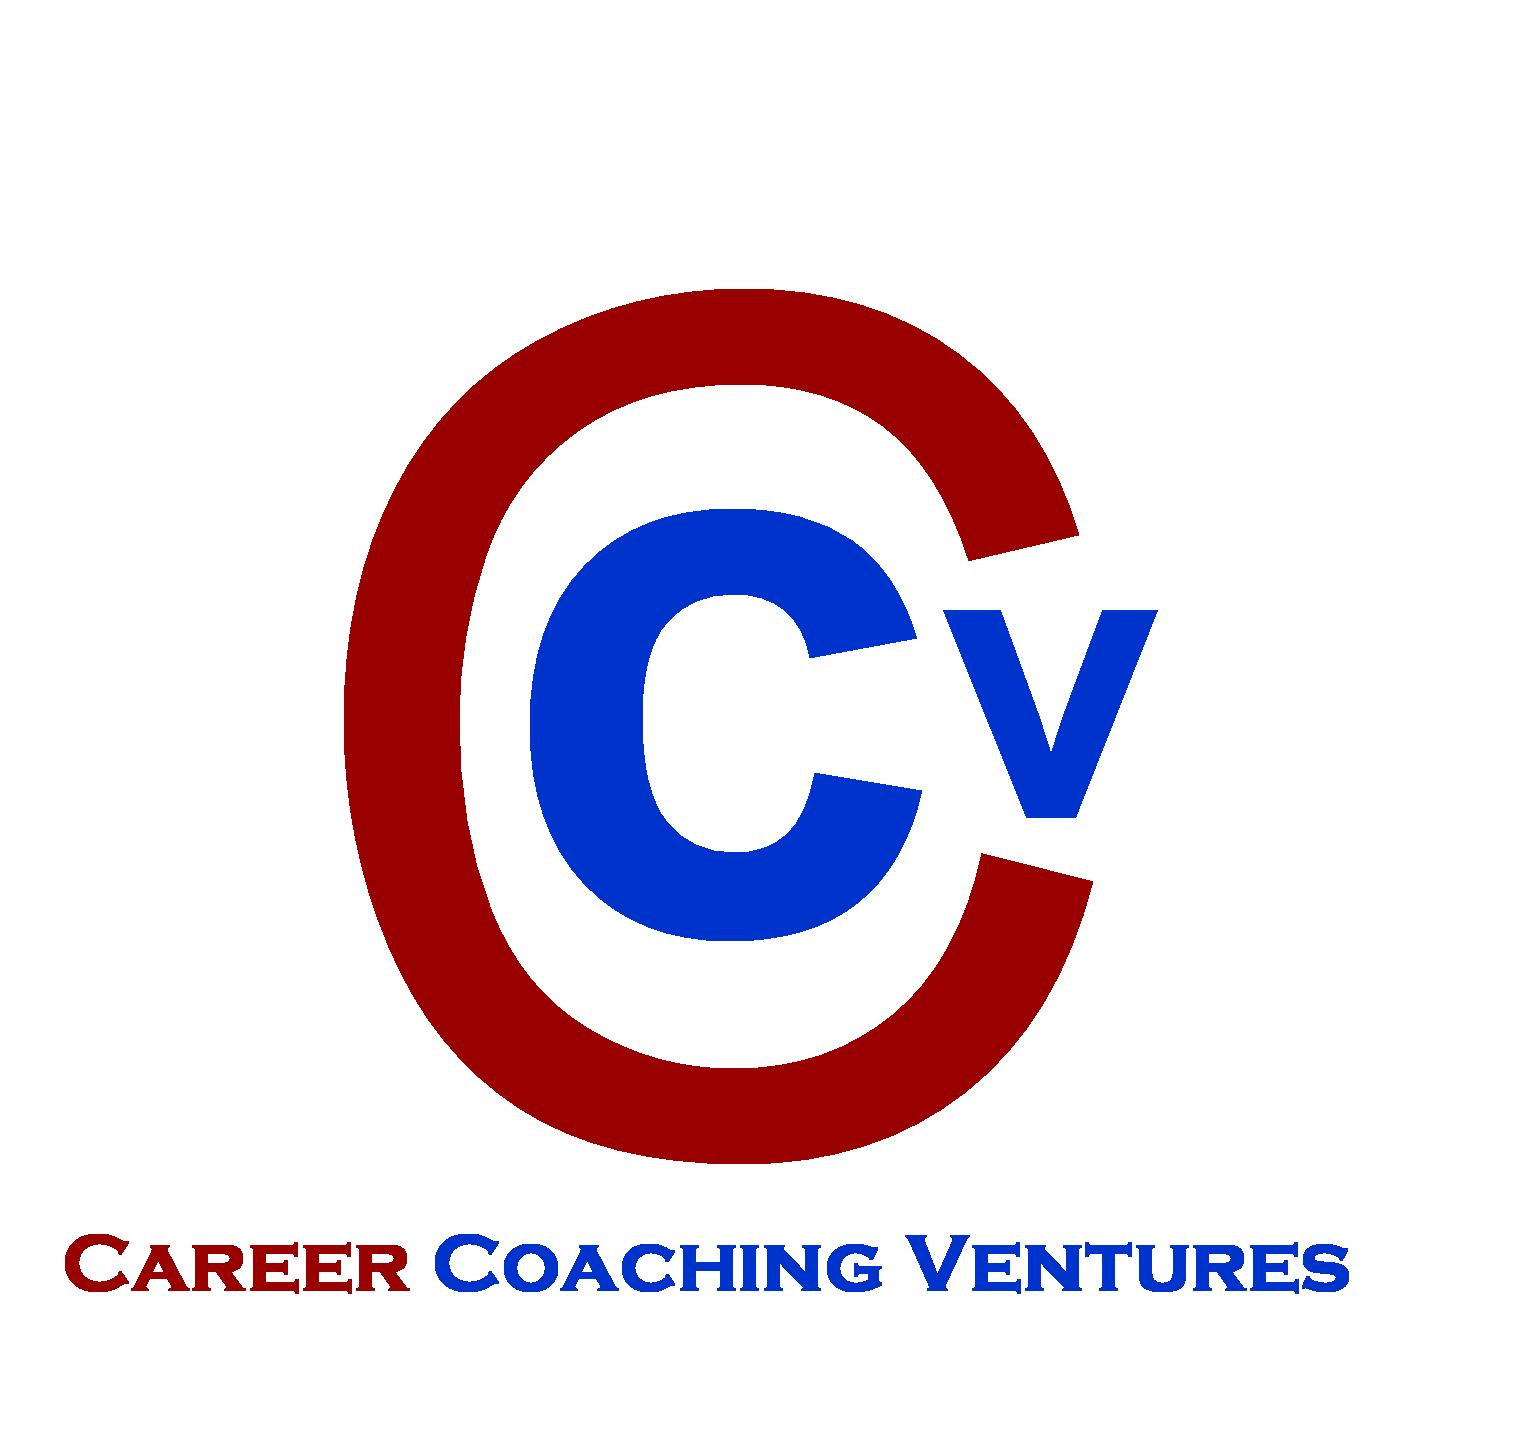 career coaching ventures building your career business from we are a career and business coaching consultancy a difference we specialise in helping people navigate their way through the maze of potential career